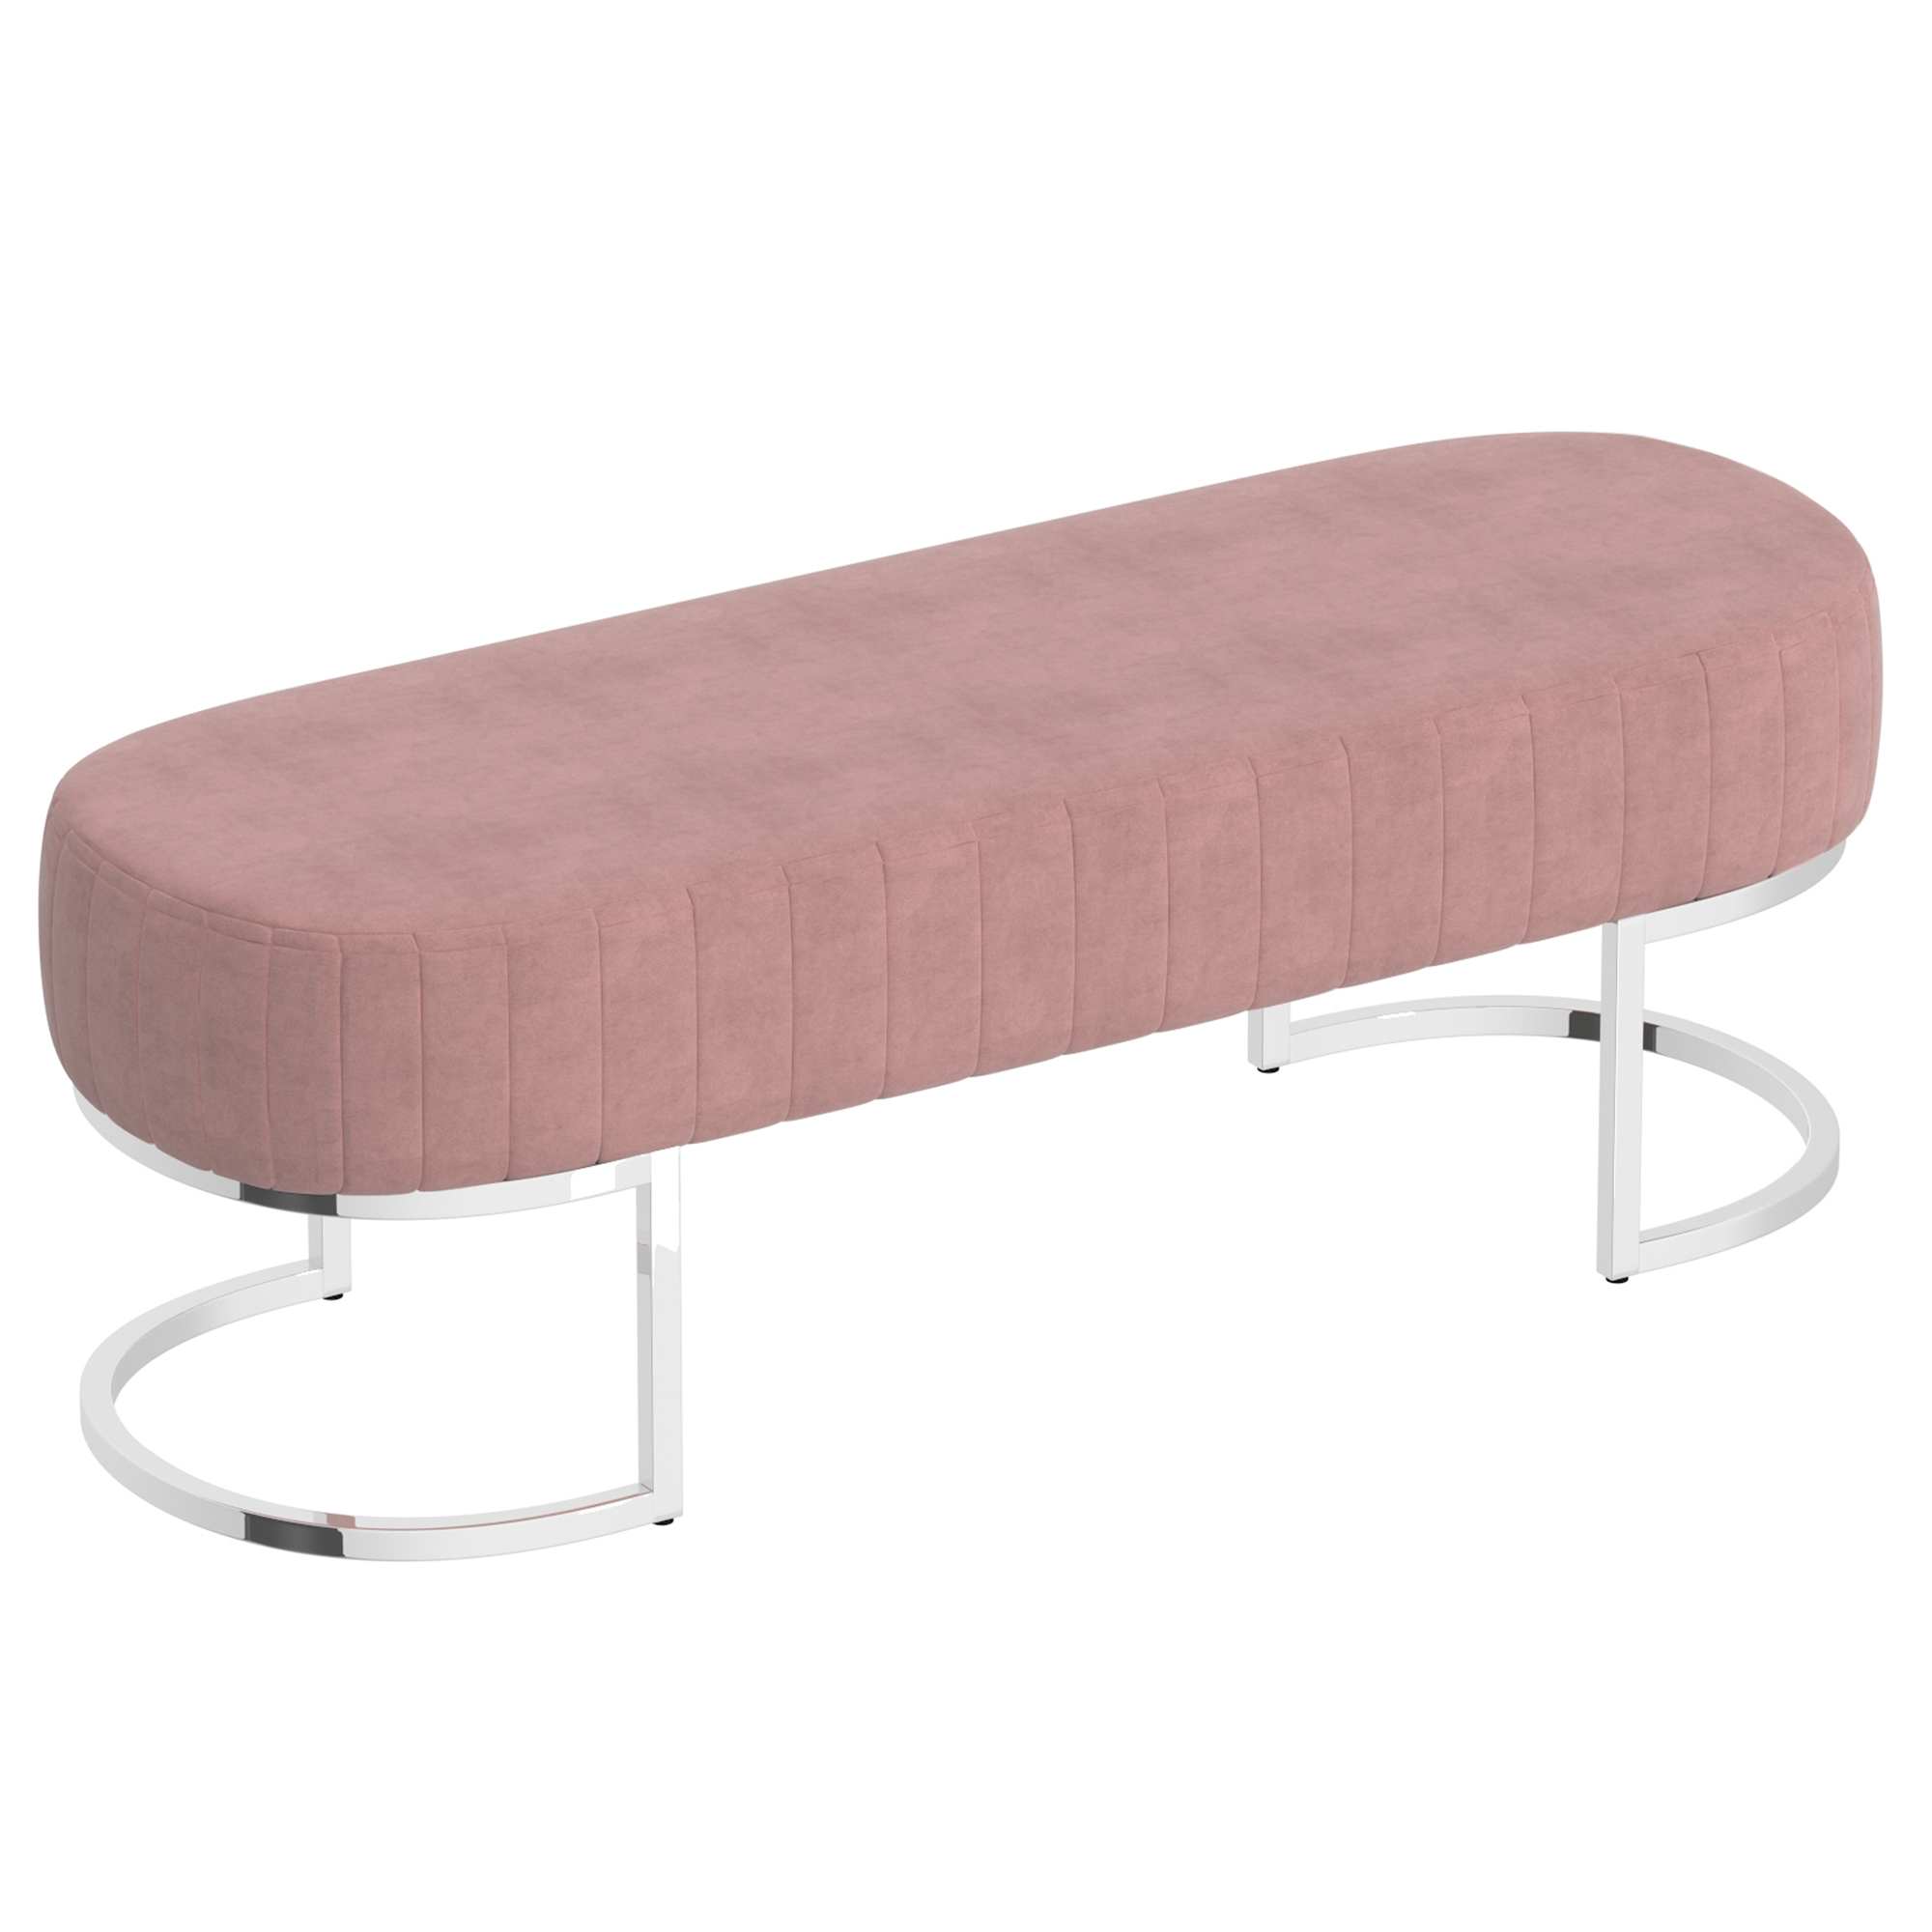 Contemporary Velvet & Metal Bench in Dusty Rose & Silver